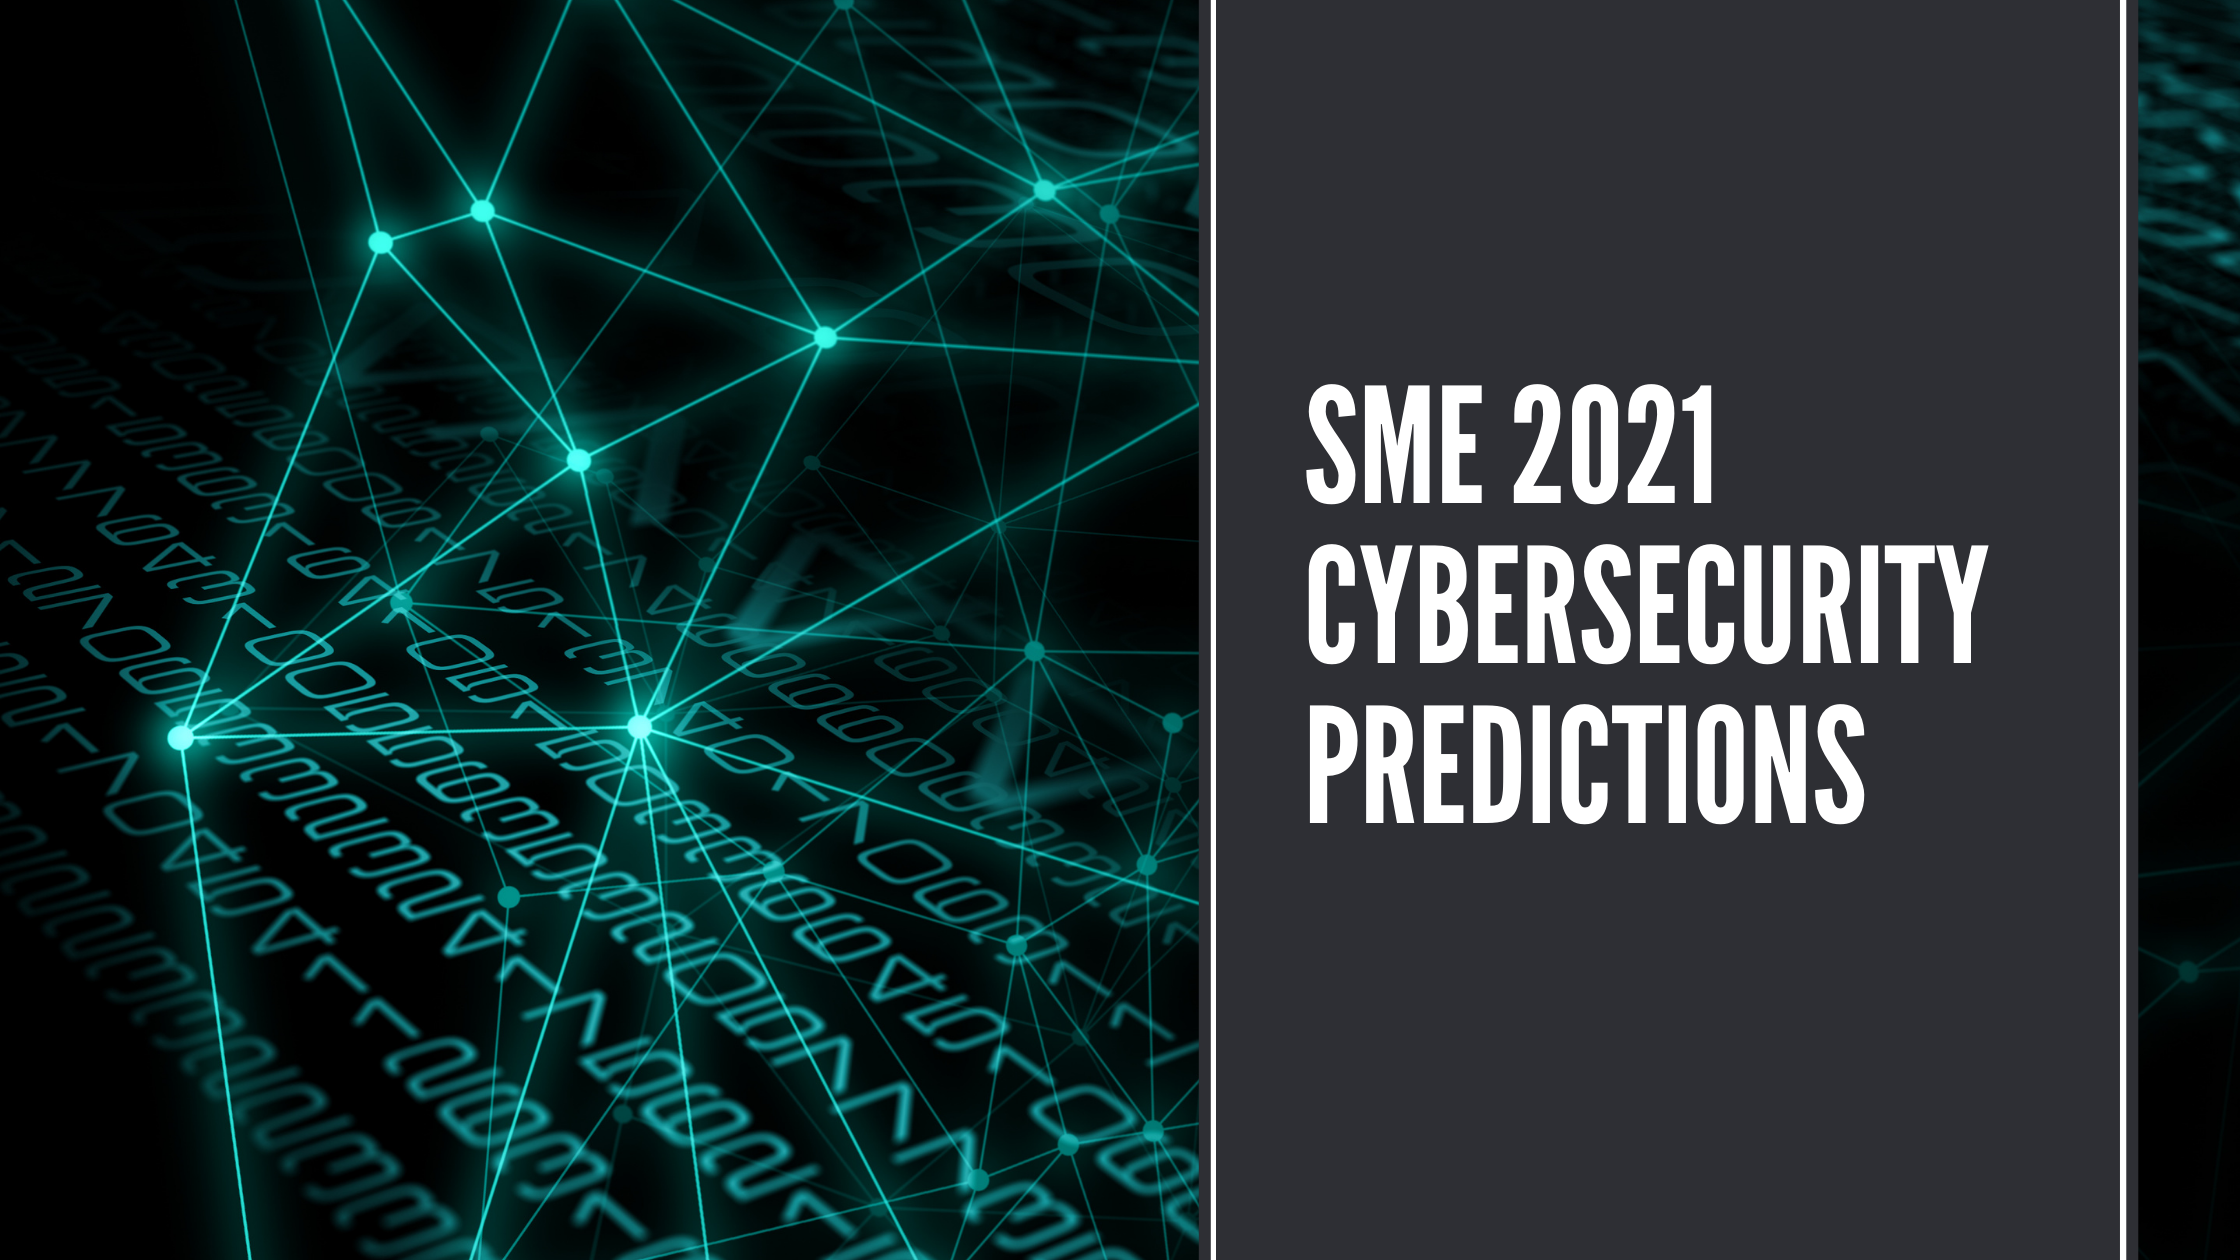 SME 2021 Cybersecurity Predictions